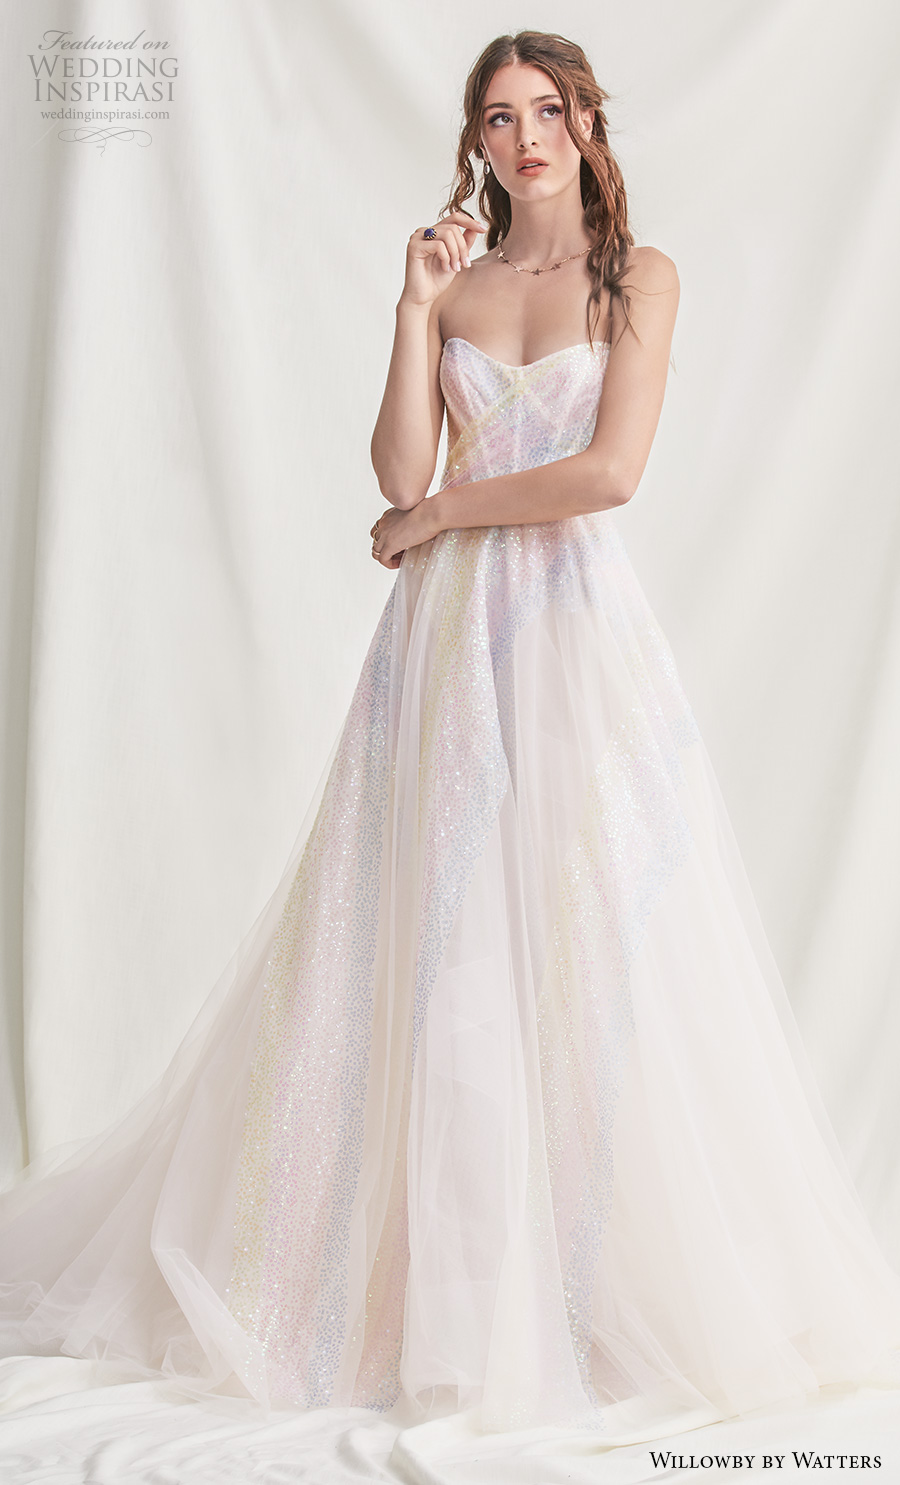 willowby by watters spring 2019 bridal strapless sweetheart neckline light embellishment glitzy romantic multi colored a  line wedding dress backless sweep train (16) mv